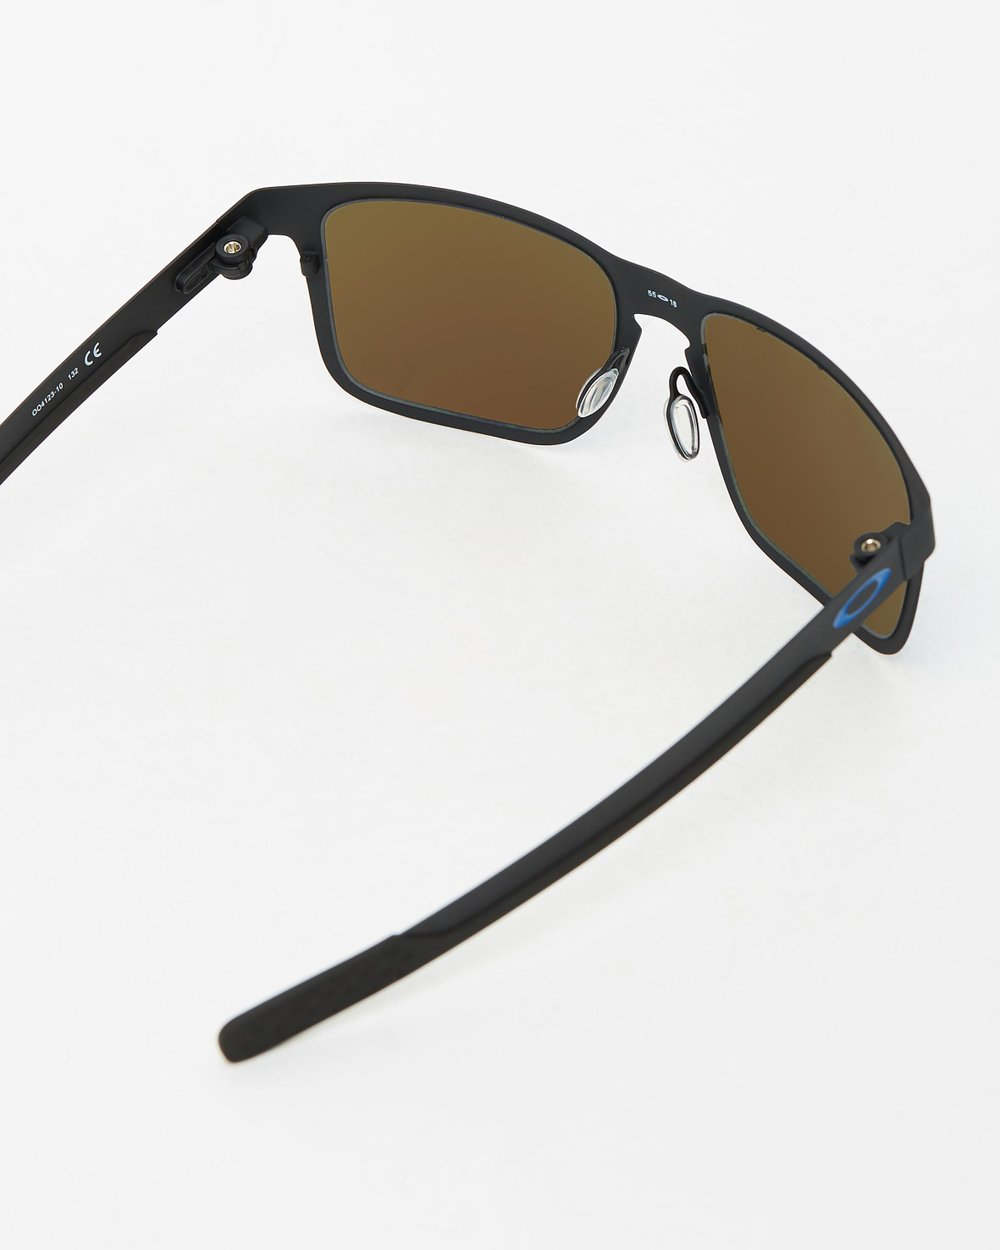 7d9bc5cca9 Oakley Performance Lifestyle OO4123 by Oakley Online